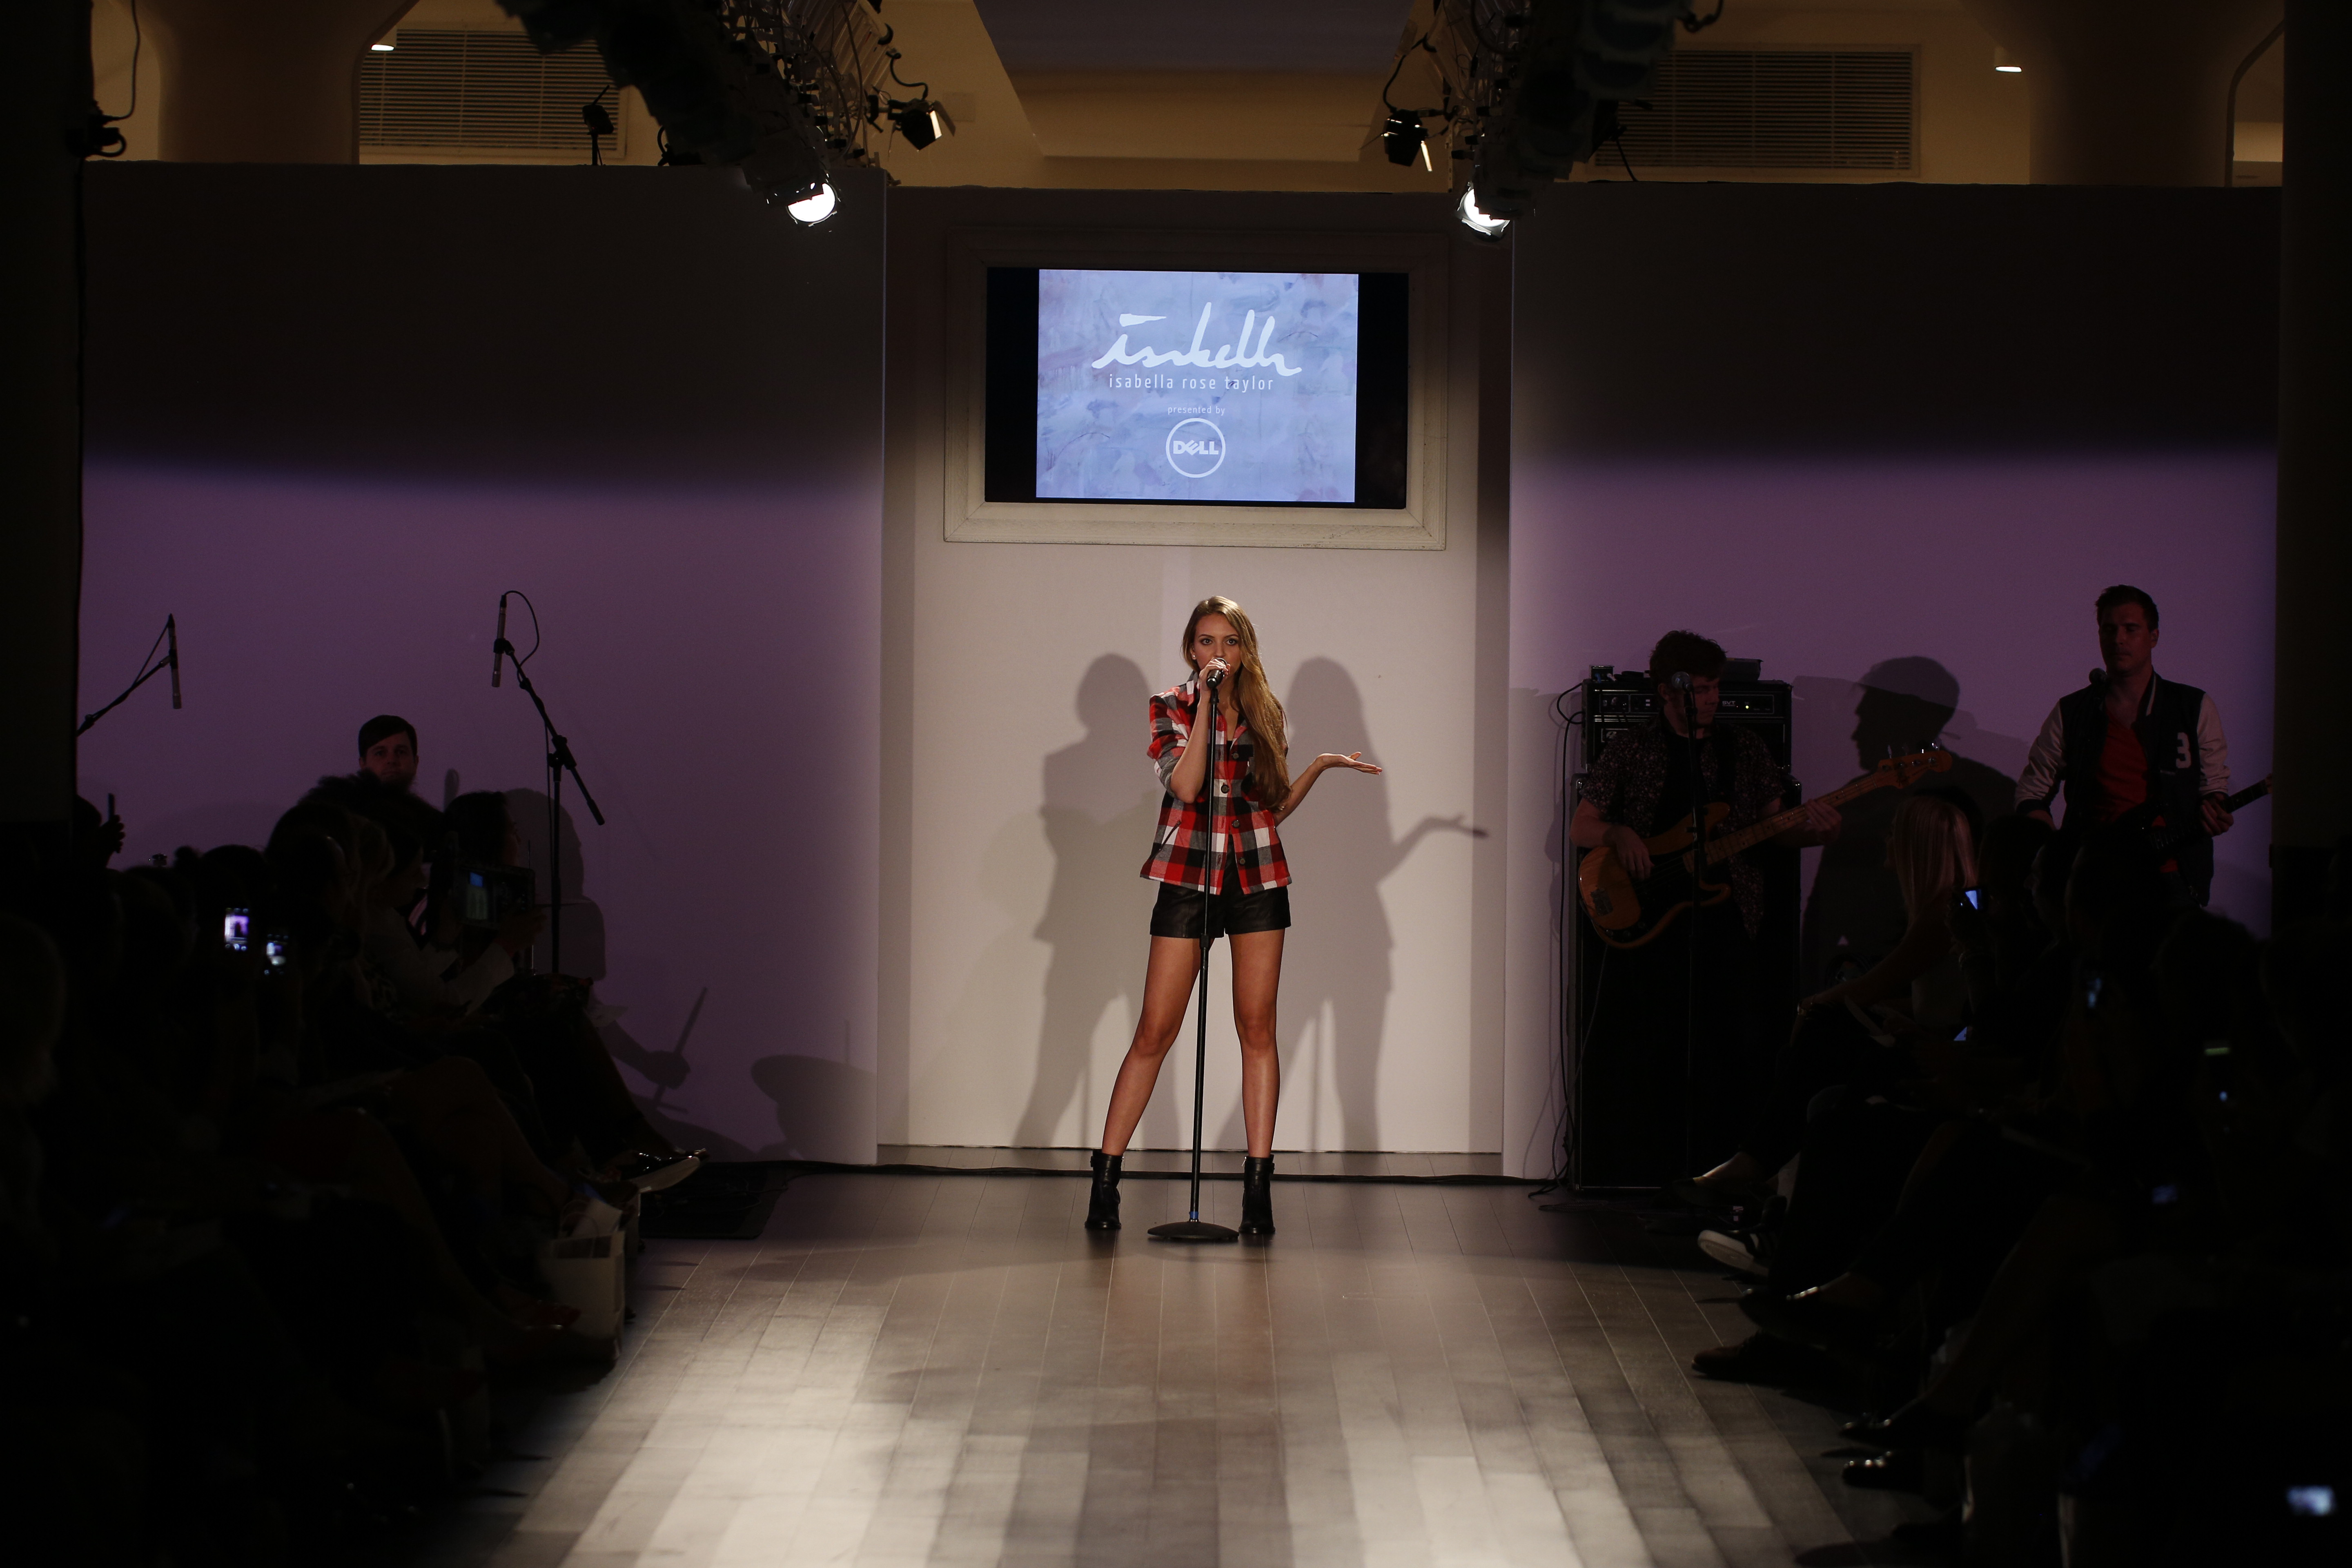 05_Olivia Somerlyn performing her single at the Isabella Rose Taylor show